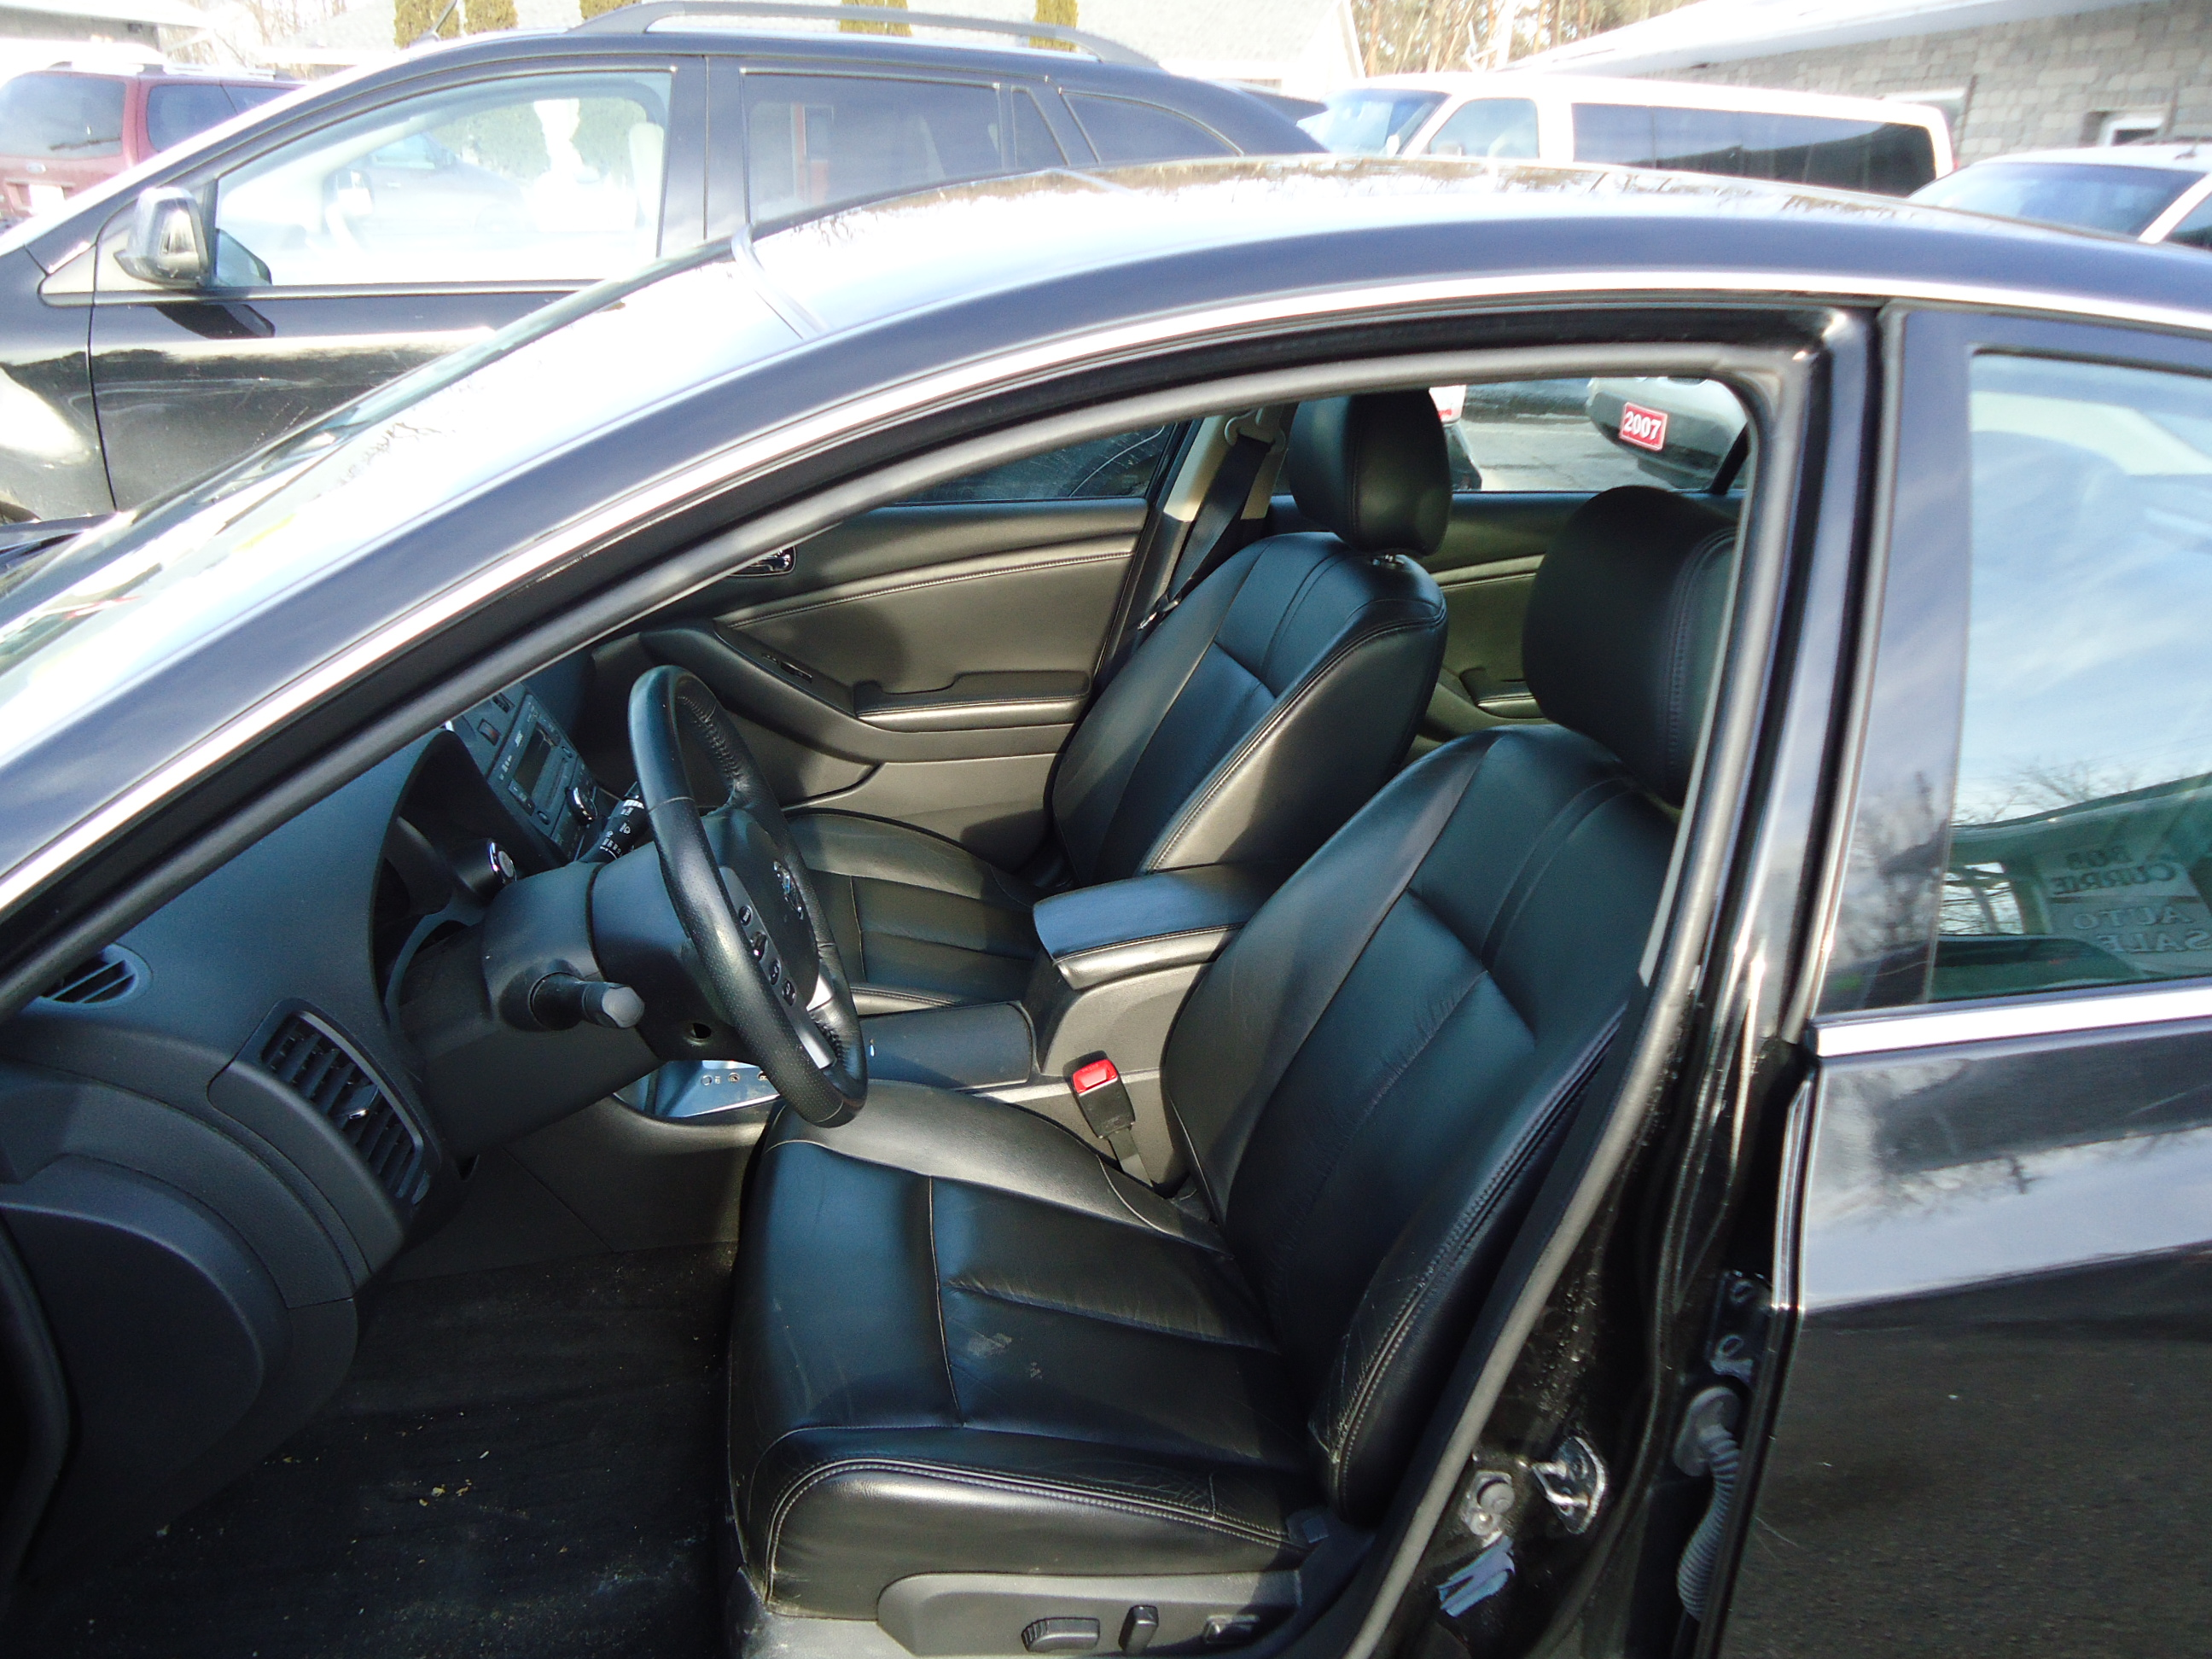 2007 Nissan Altima Interior (1)